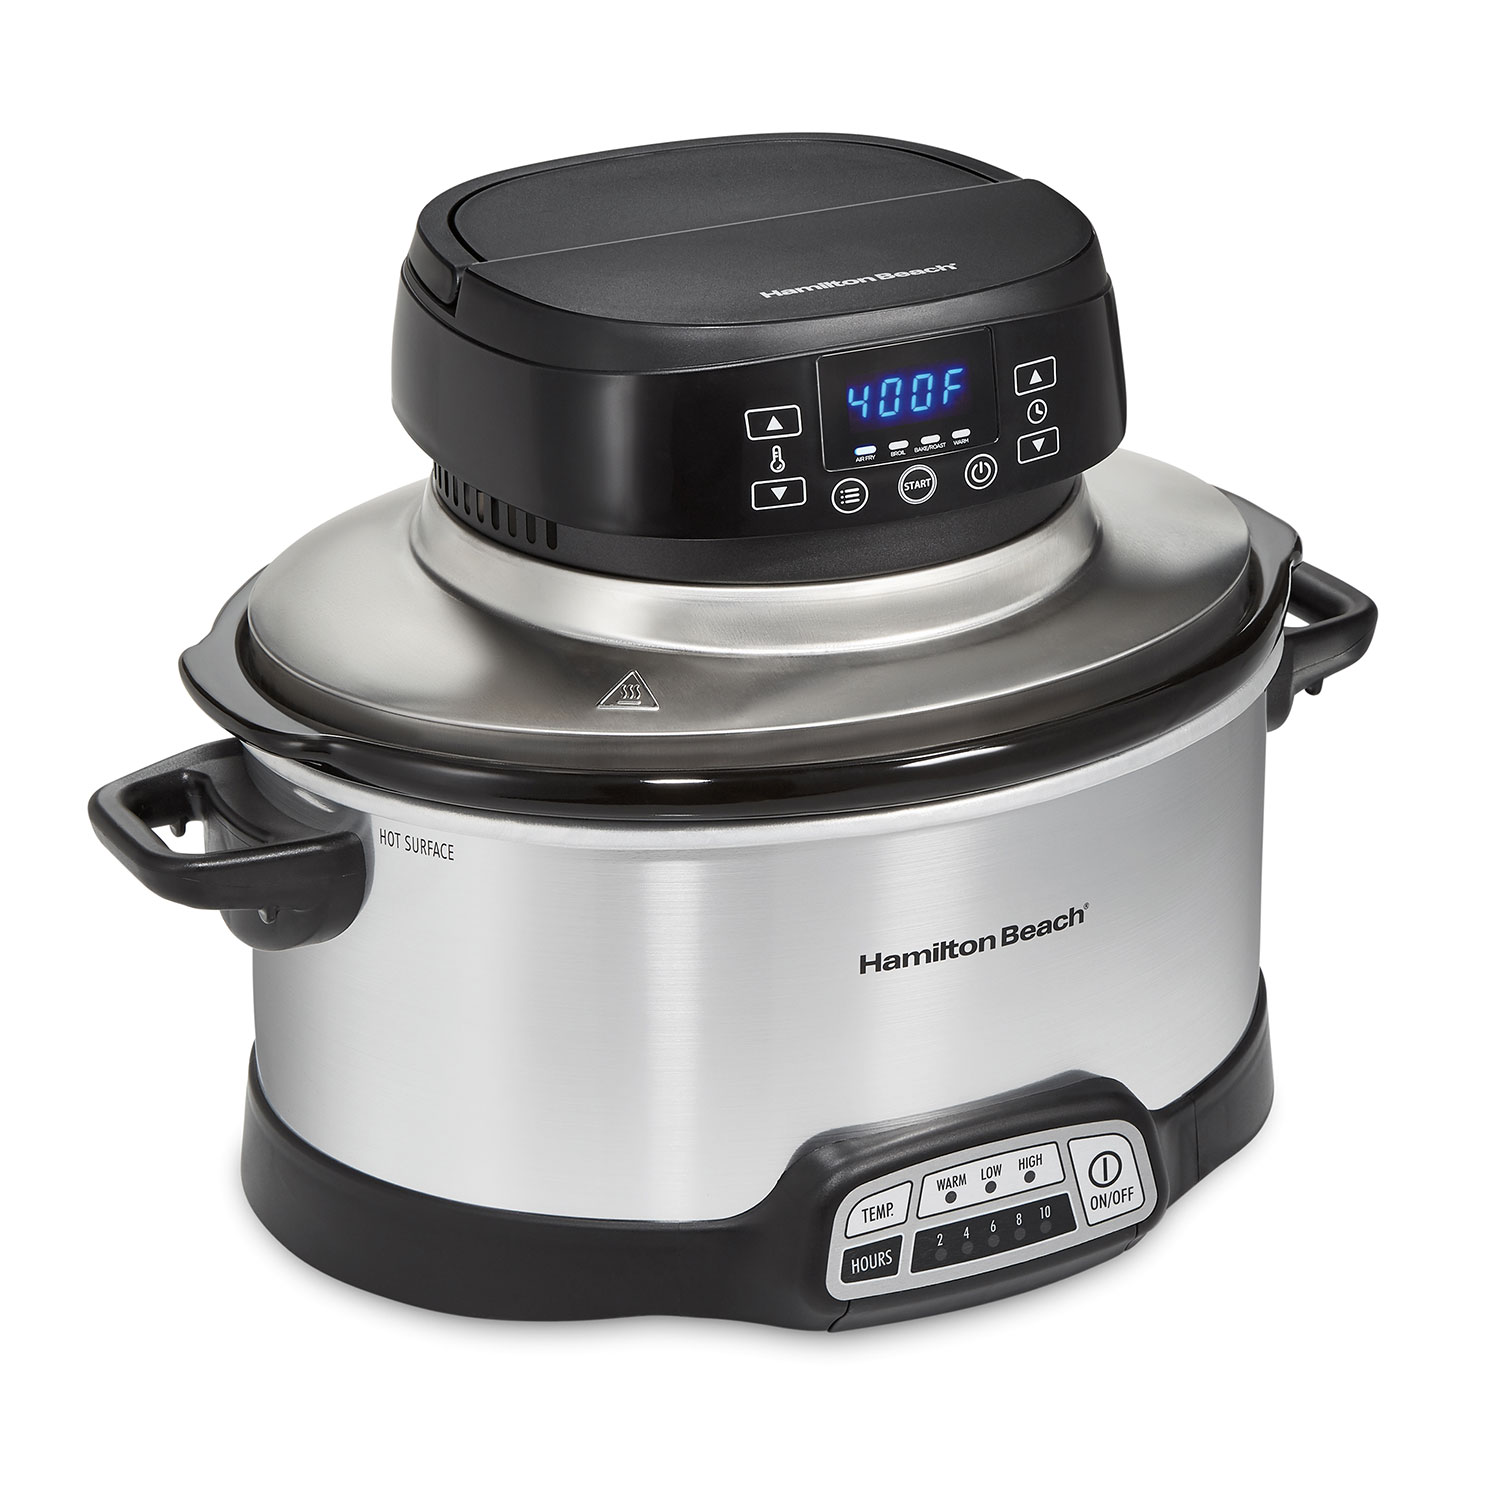 6 Quart 2-in-1 Air Fry Slow Cooker, Silver, (33061)